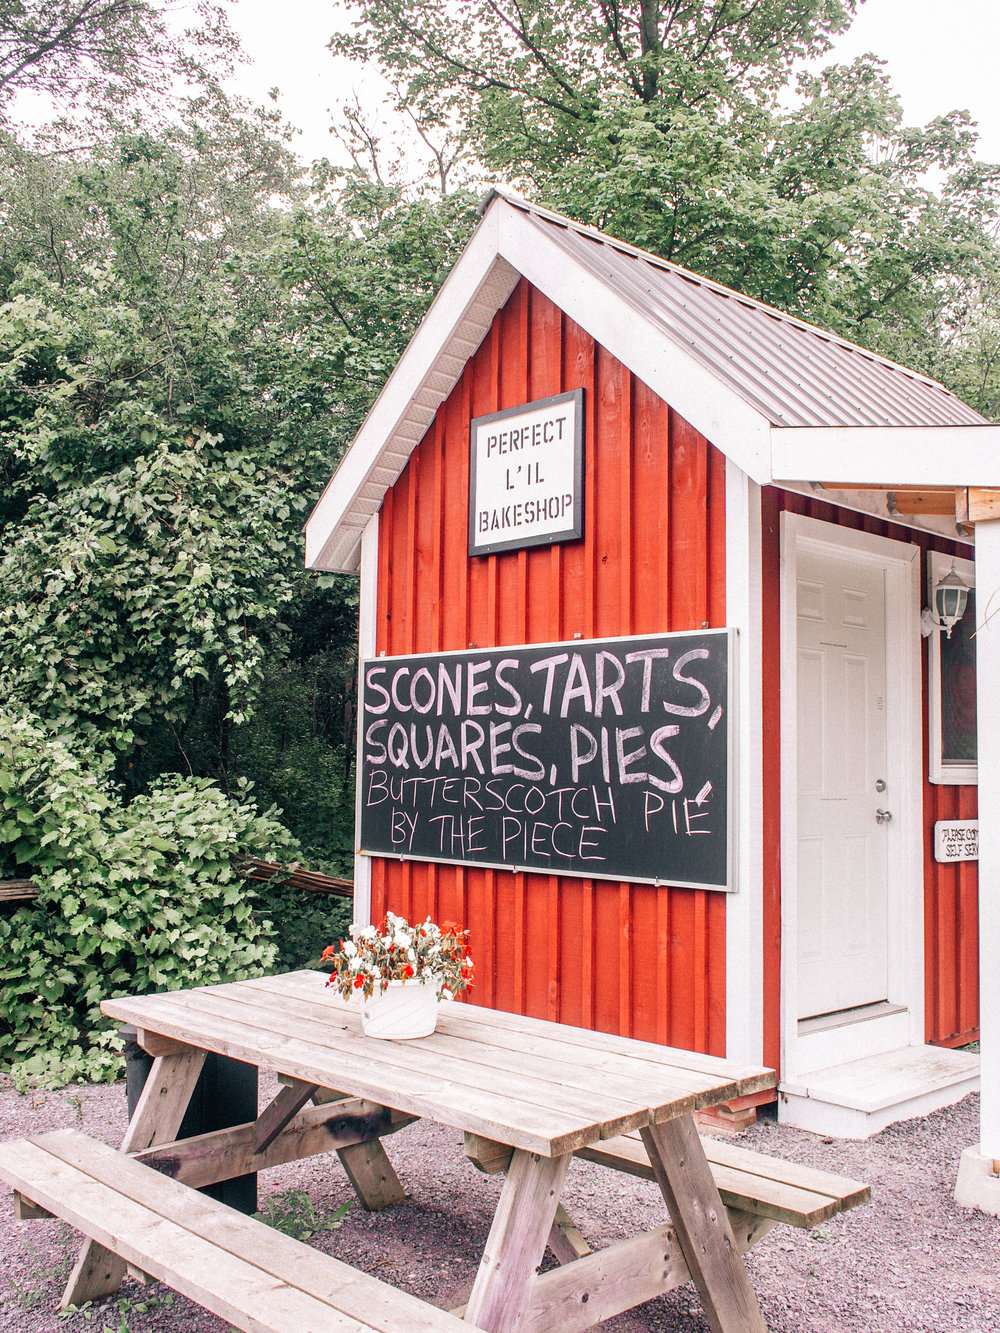 Perfect Lil' Bakeshop in Prince Edward County - By Louise Johnson